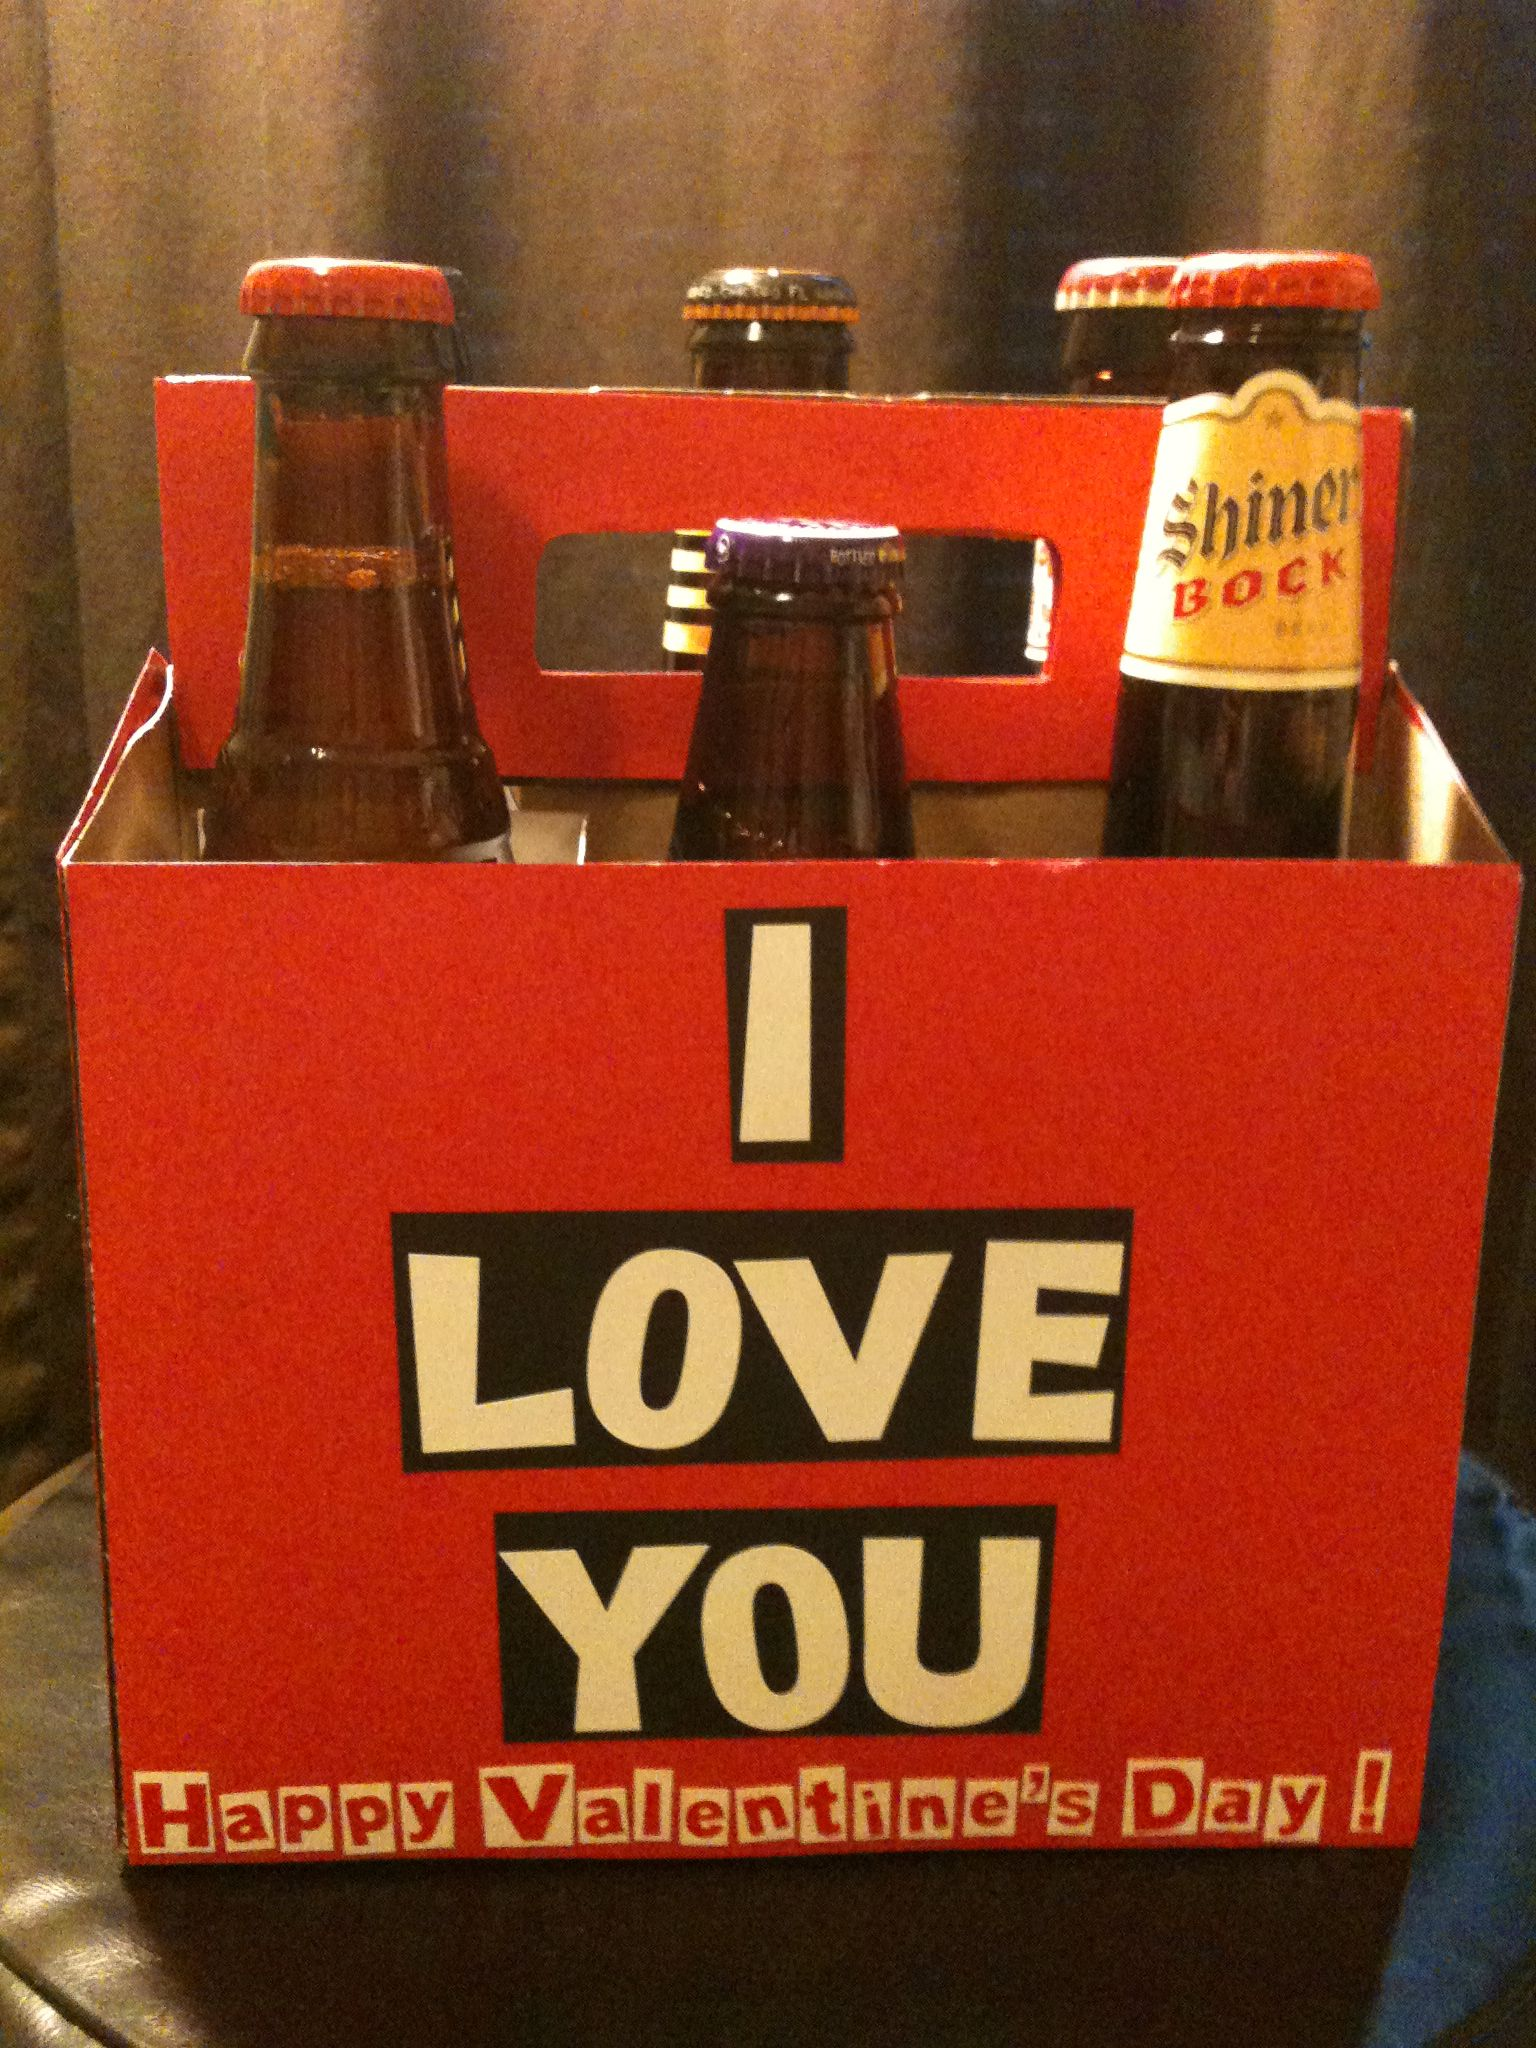 build his favorite 6 pack decorate the beer holder valentines day gift - Manly Valentine Gifts